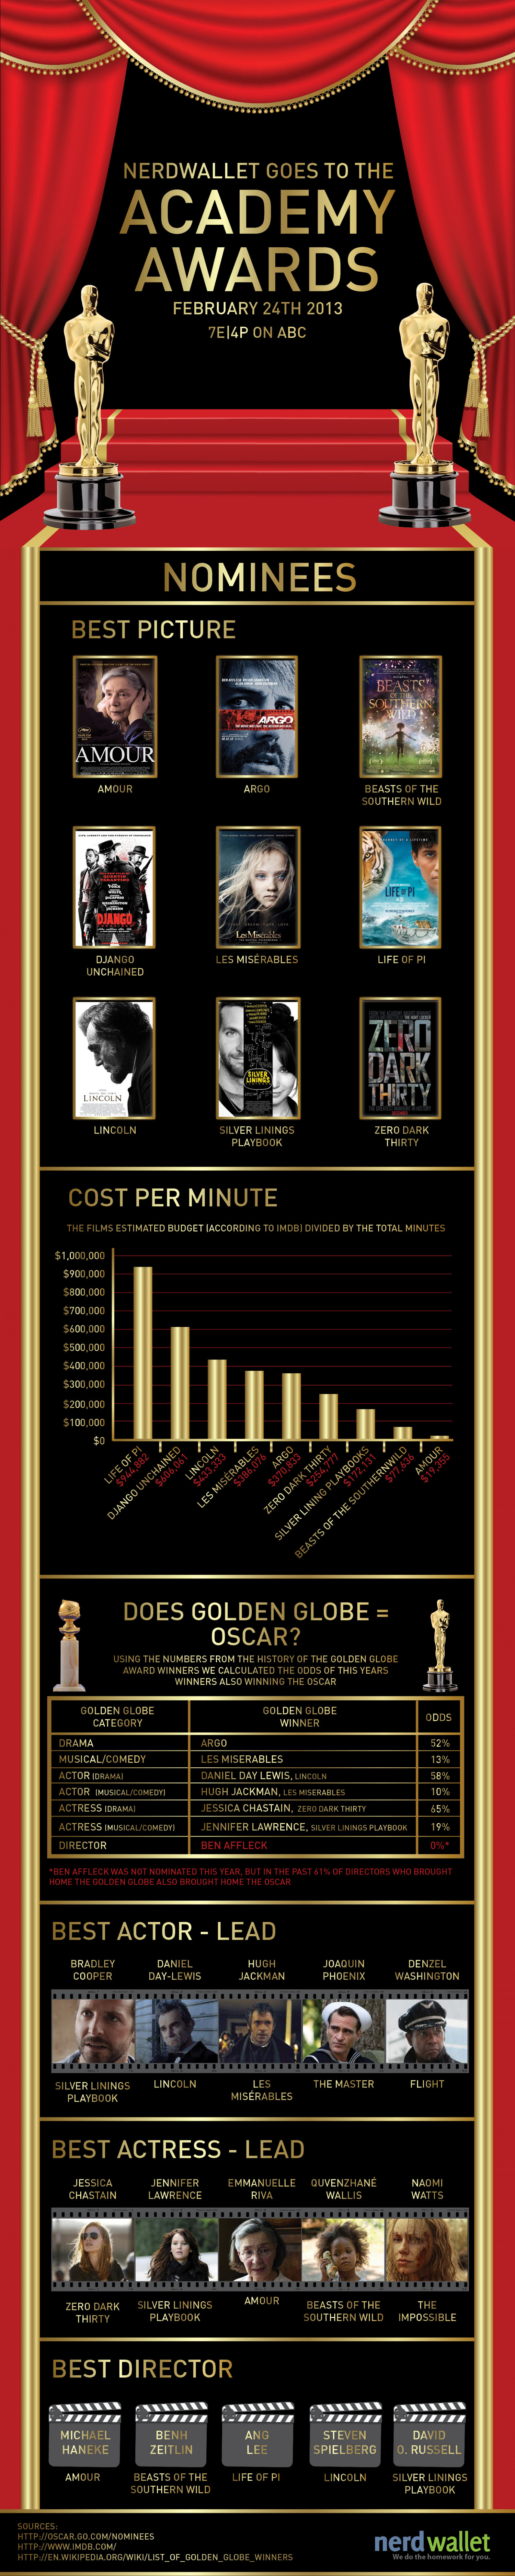 The Academy Awards By The Numbers Infographic